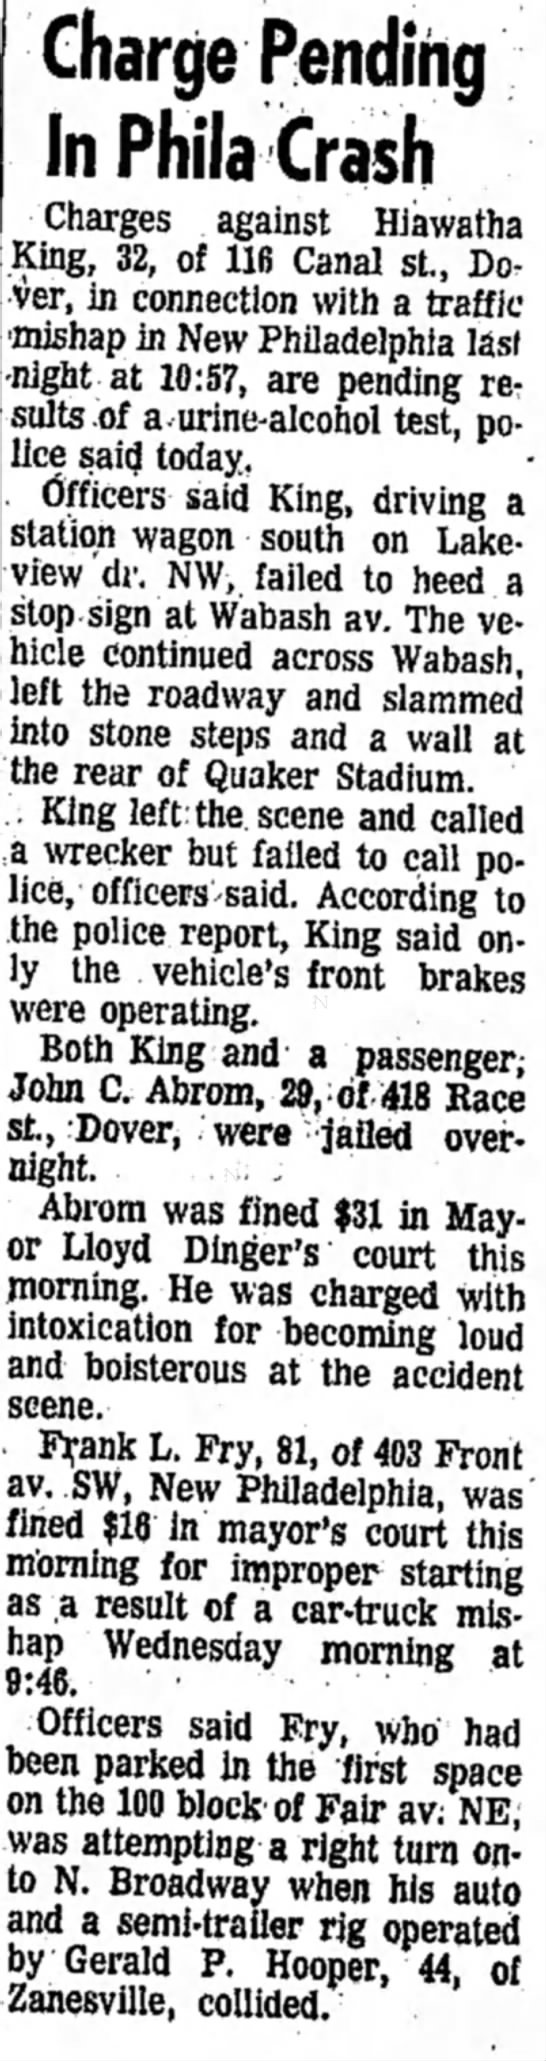 Hiawatha King May 9, 1968 Car accident - Charge Pending In Phila Crash Charges against...